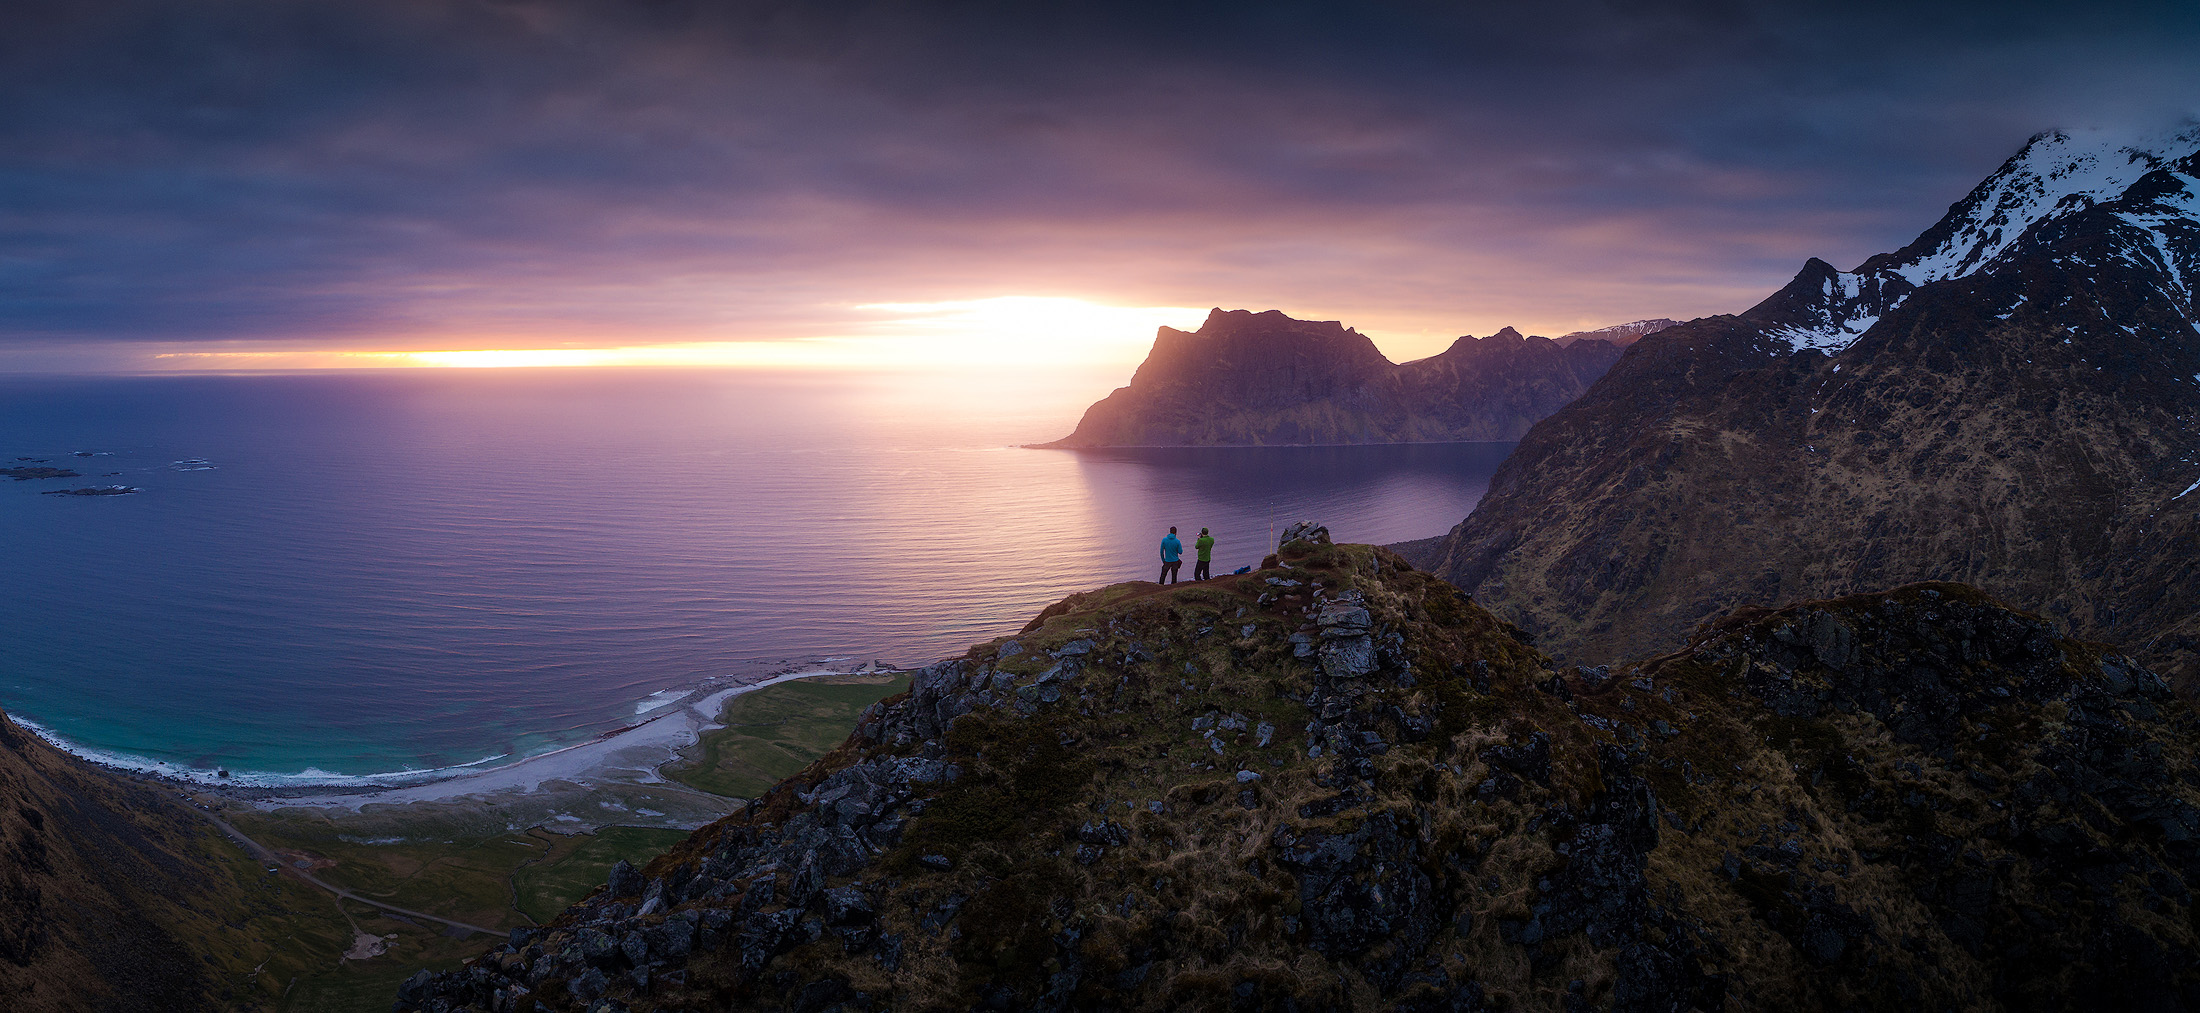 Hiking with the Midnight sun